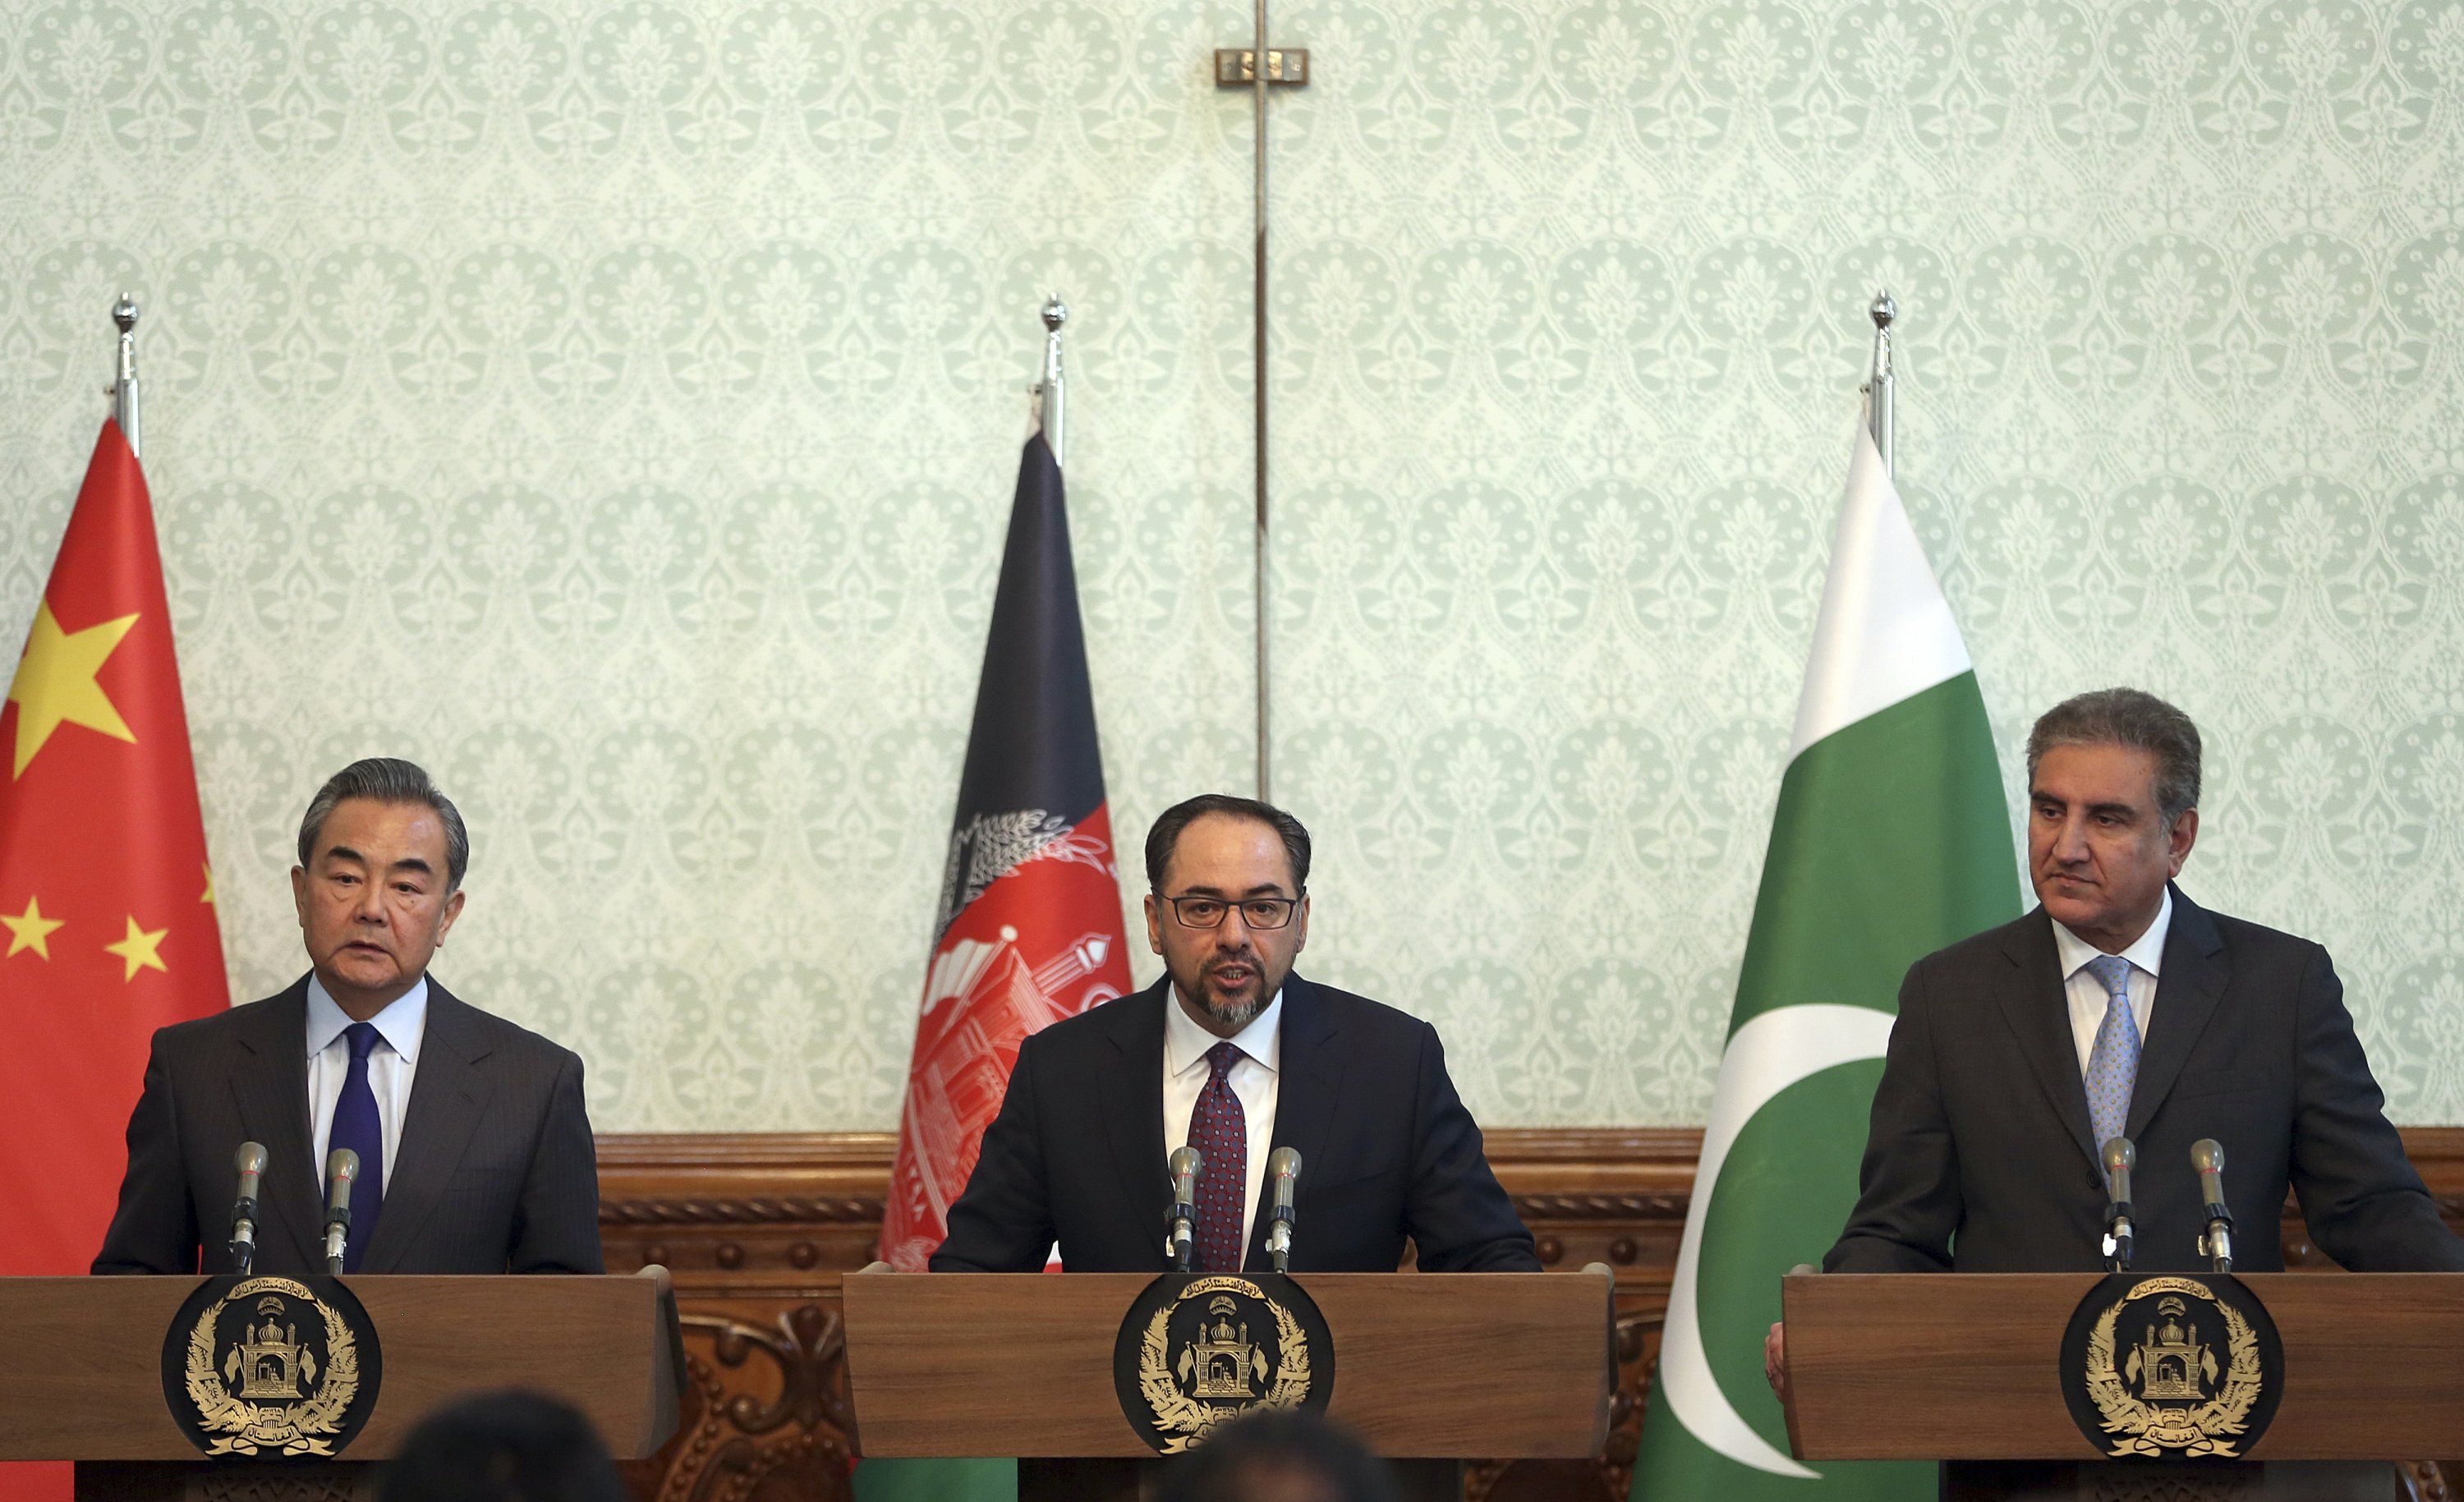 Afghanistan's then-Foreign Minister Salahuddin Rabbani, center, speaks as Pakistani Foreign Minister Shah Mehmood Qureshi, first right, and Chinese Foreign Minister Wang Yi, first left, listen during a joint press conference at the presidential palace in Kabul, Afghanistan, Dec. 15, 2018. (AP Photo)